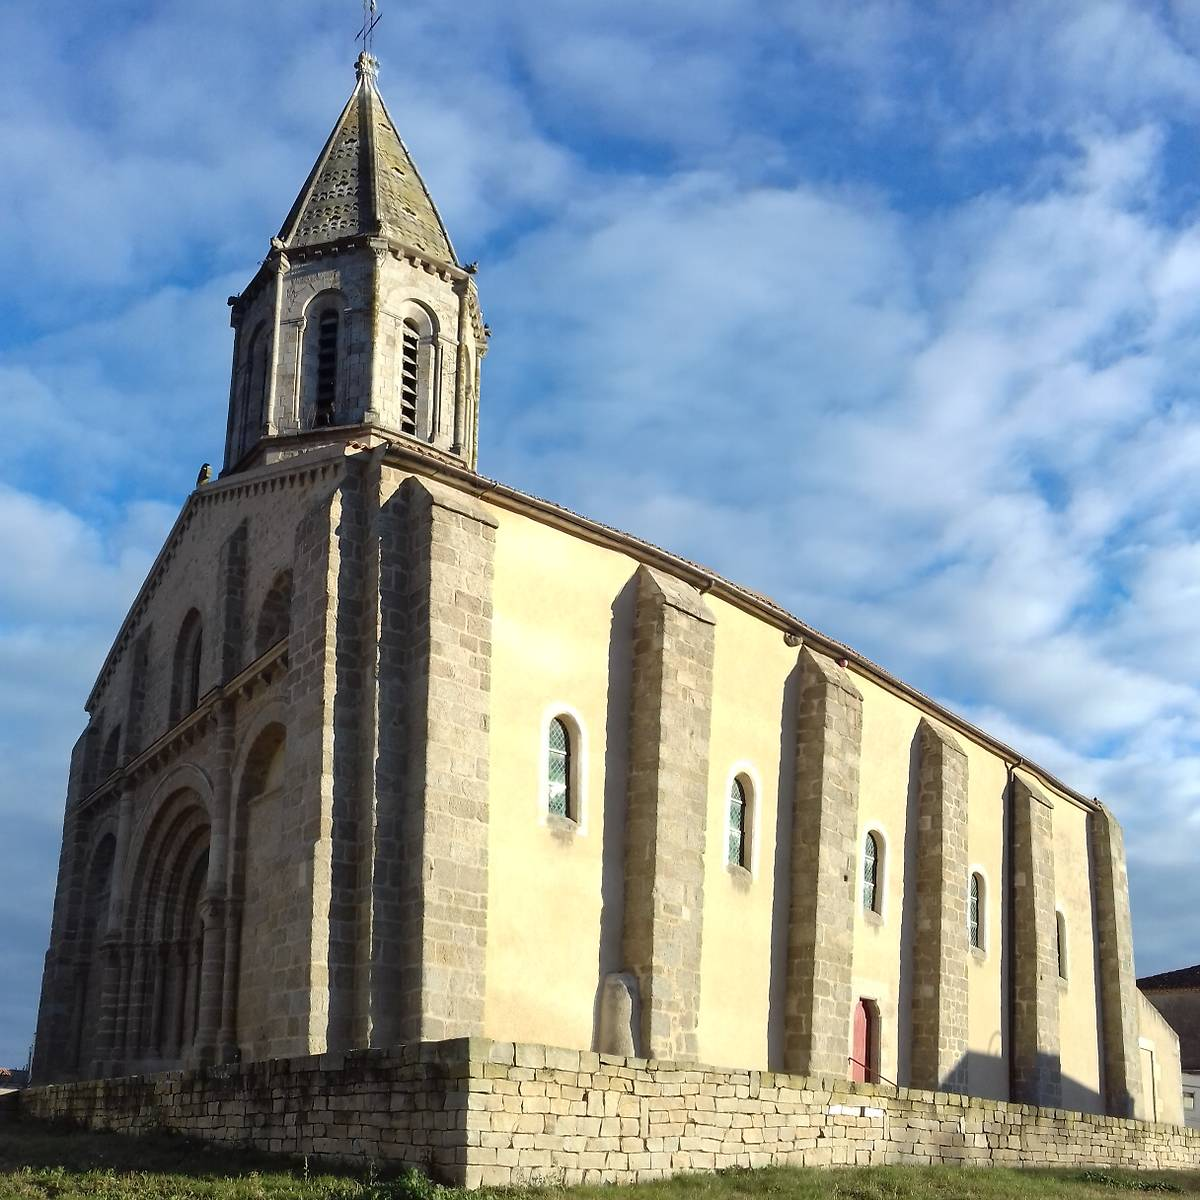 EGLISE SAINT JACQUES DE MOUTIERS LES MAUXFAITS